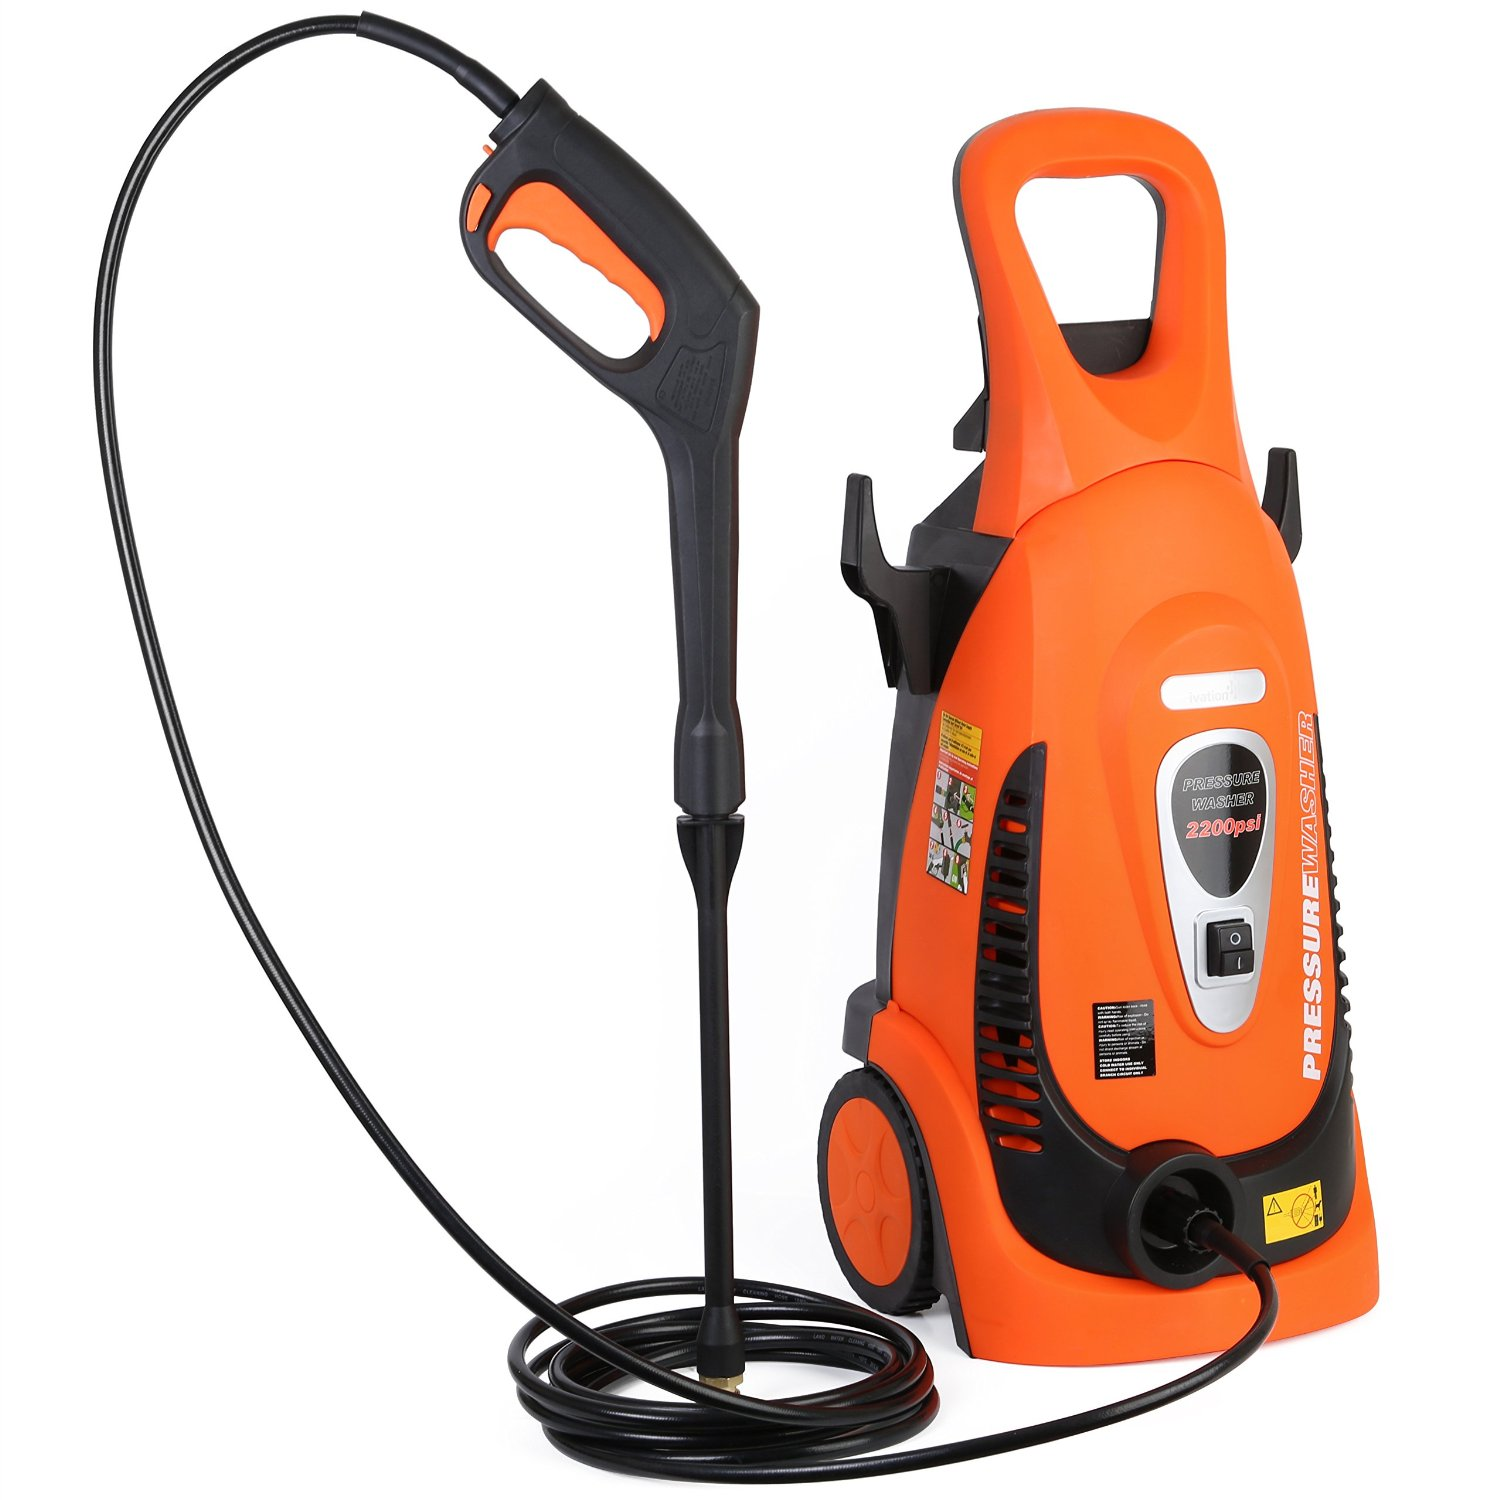 Ivation Electric Pressure Washer 2200 PSI 1.8 GPM with Nozzle Gun